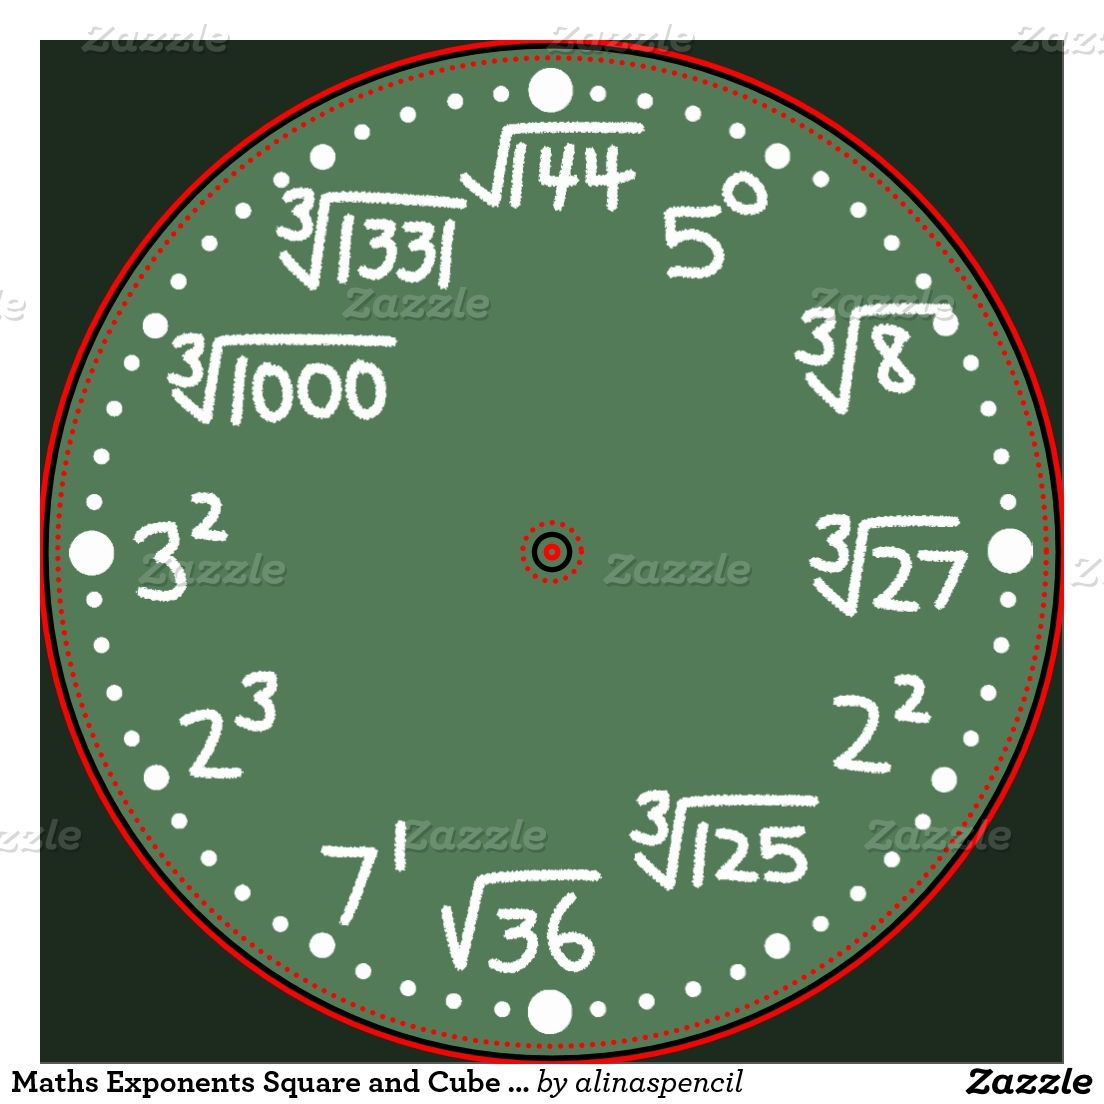 hight resolution of Maths Exponents Square and Cube Roots Wall Clock   Zazzle.com   Exponents